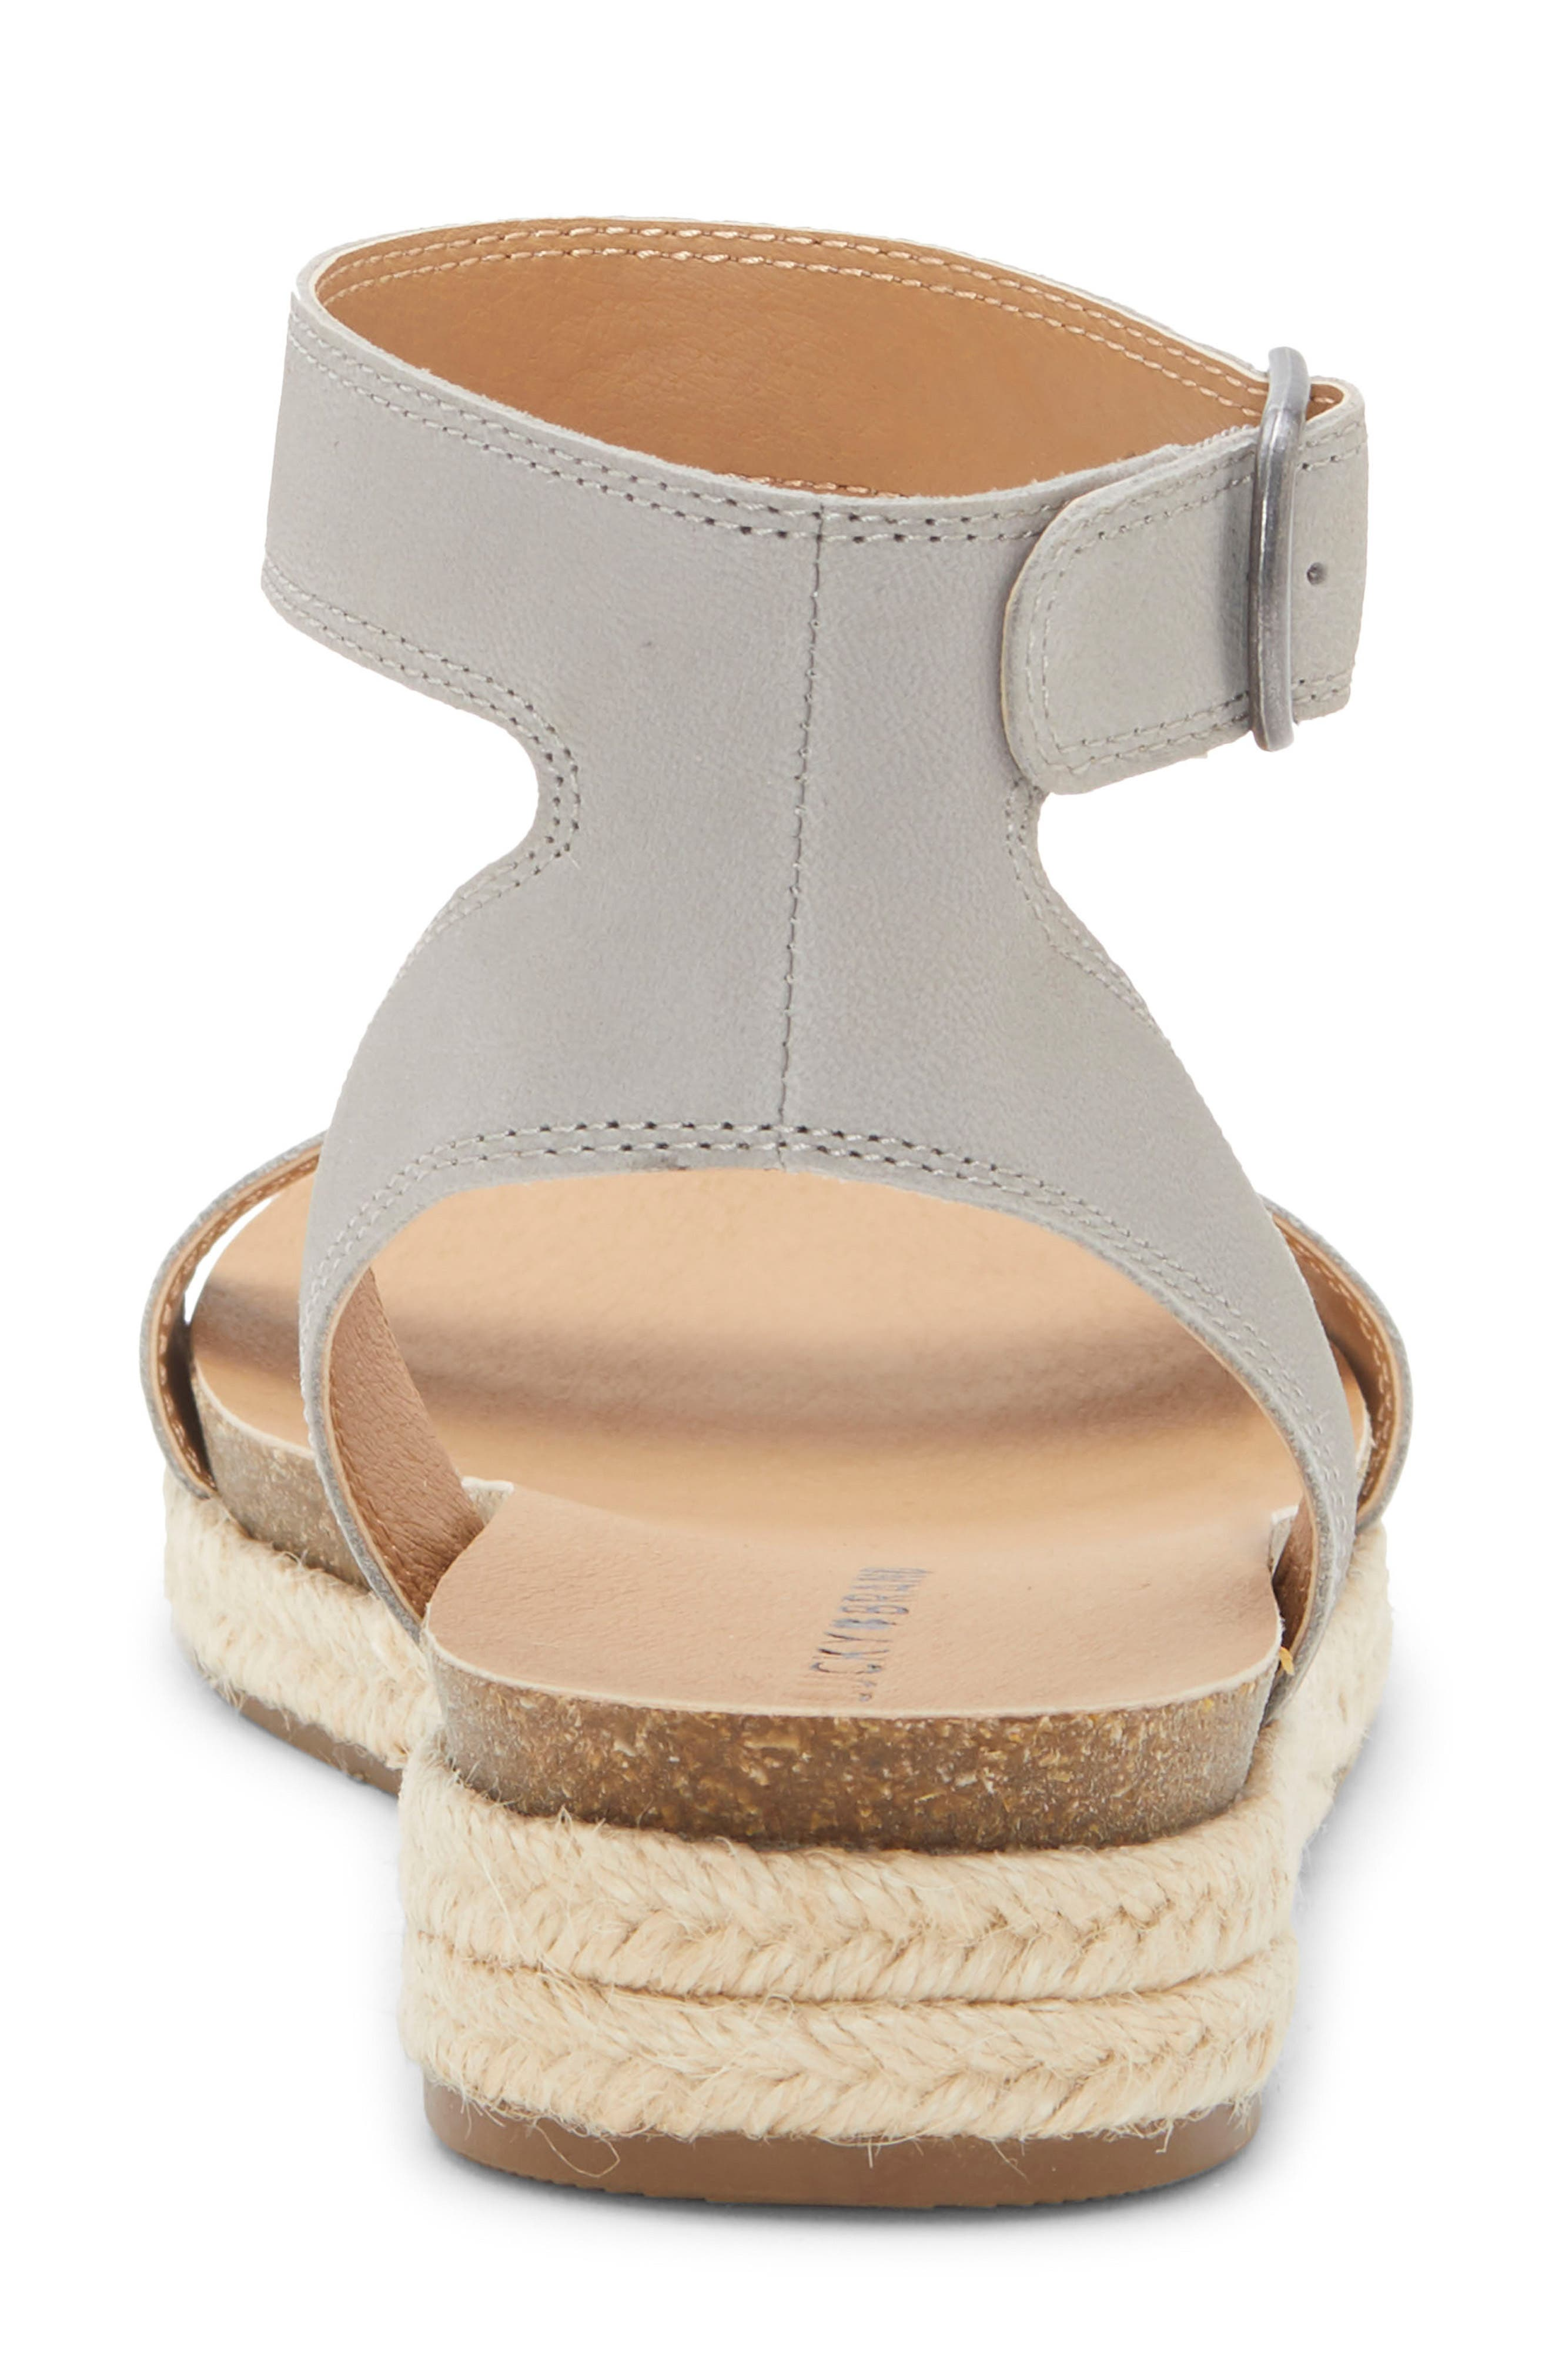 LUCKY BRAND, Garston Espadrille Sandal, Alternate thumbnail 7, color, CHINCHILLA LEATHER